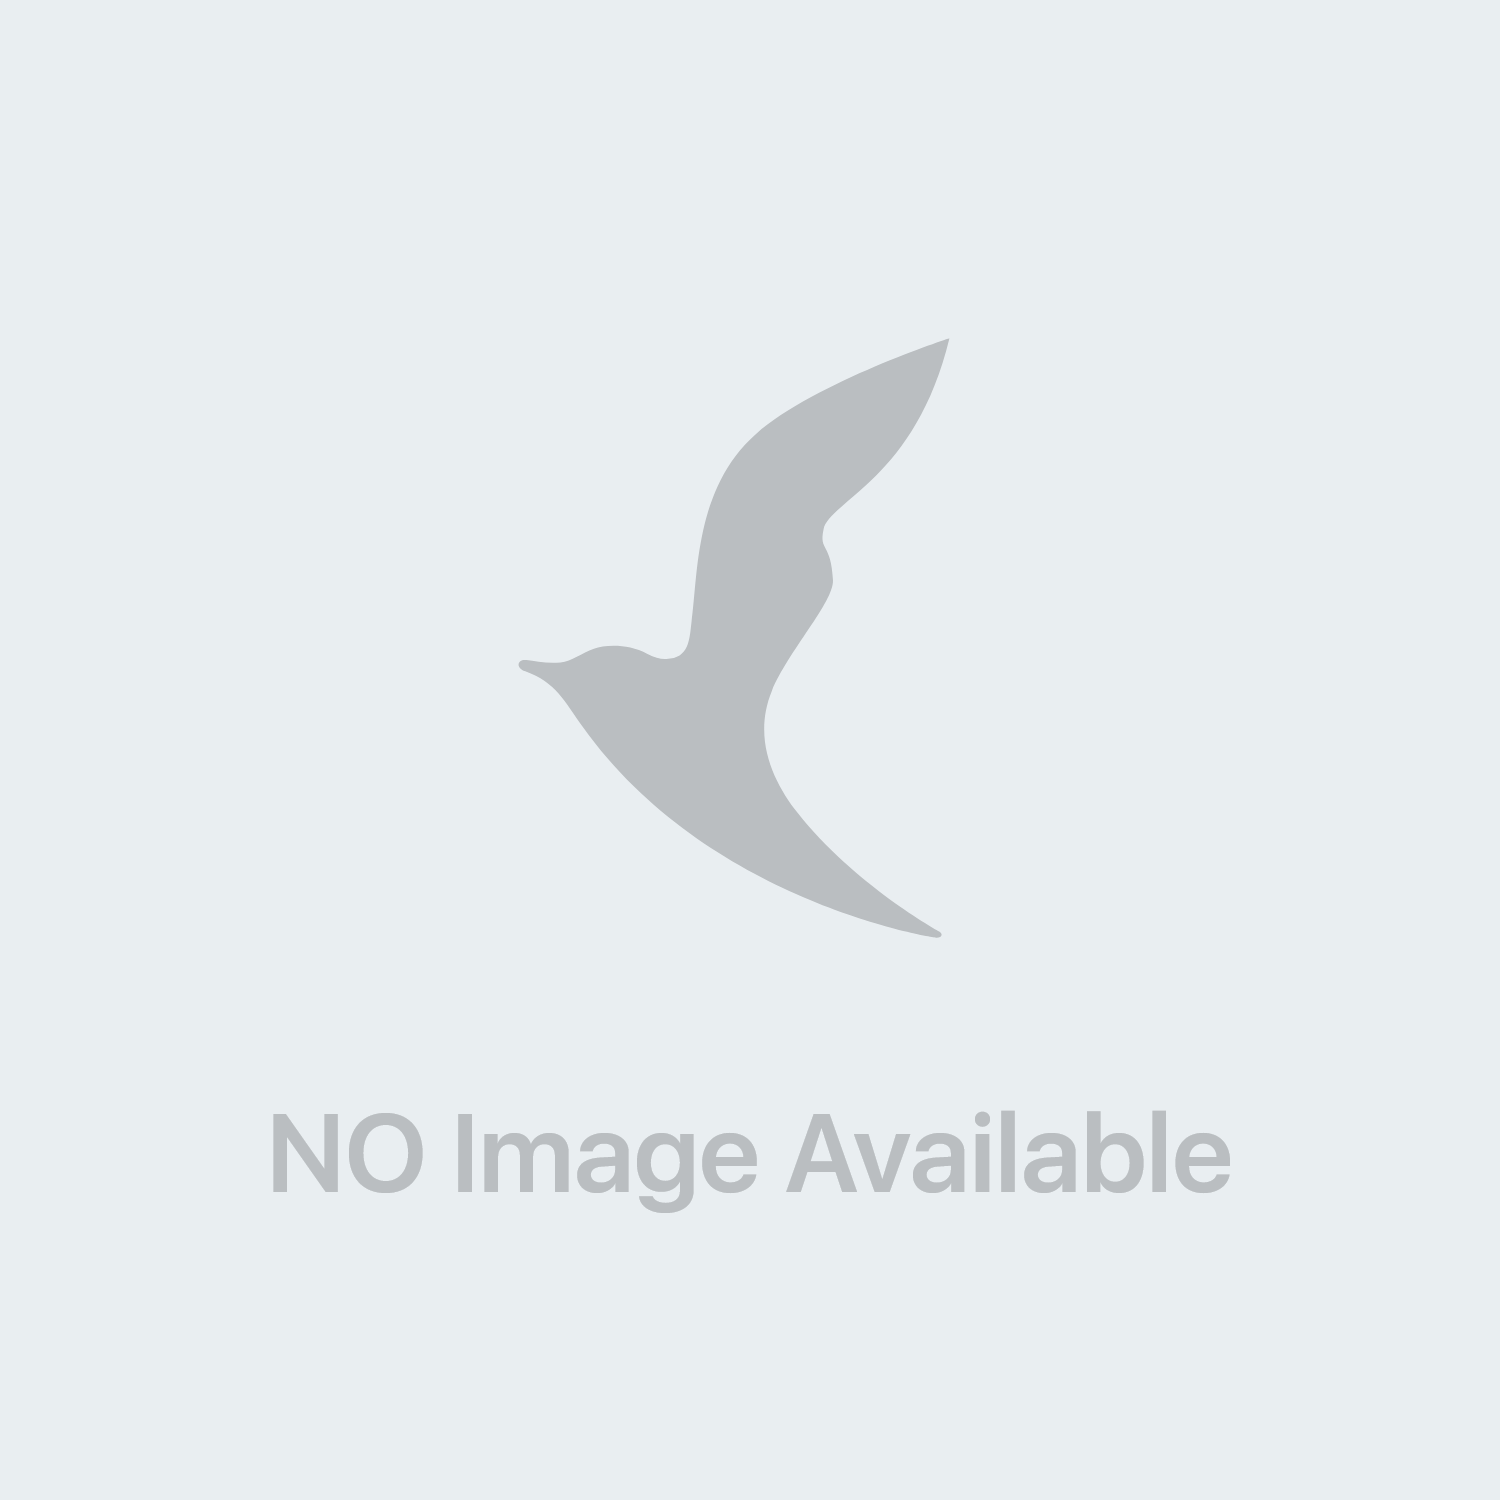 Chifa Easy Travel Gatto Integratore Viaggio 10 Compresse